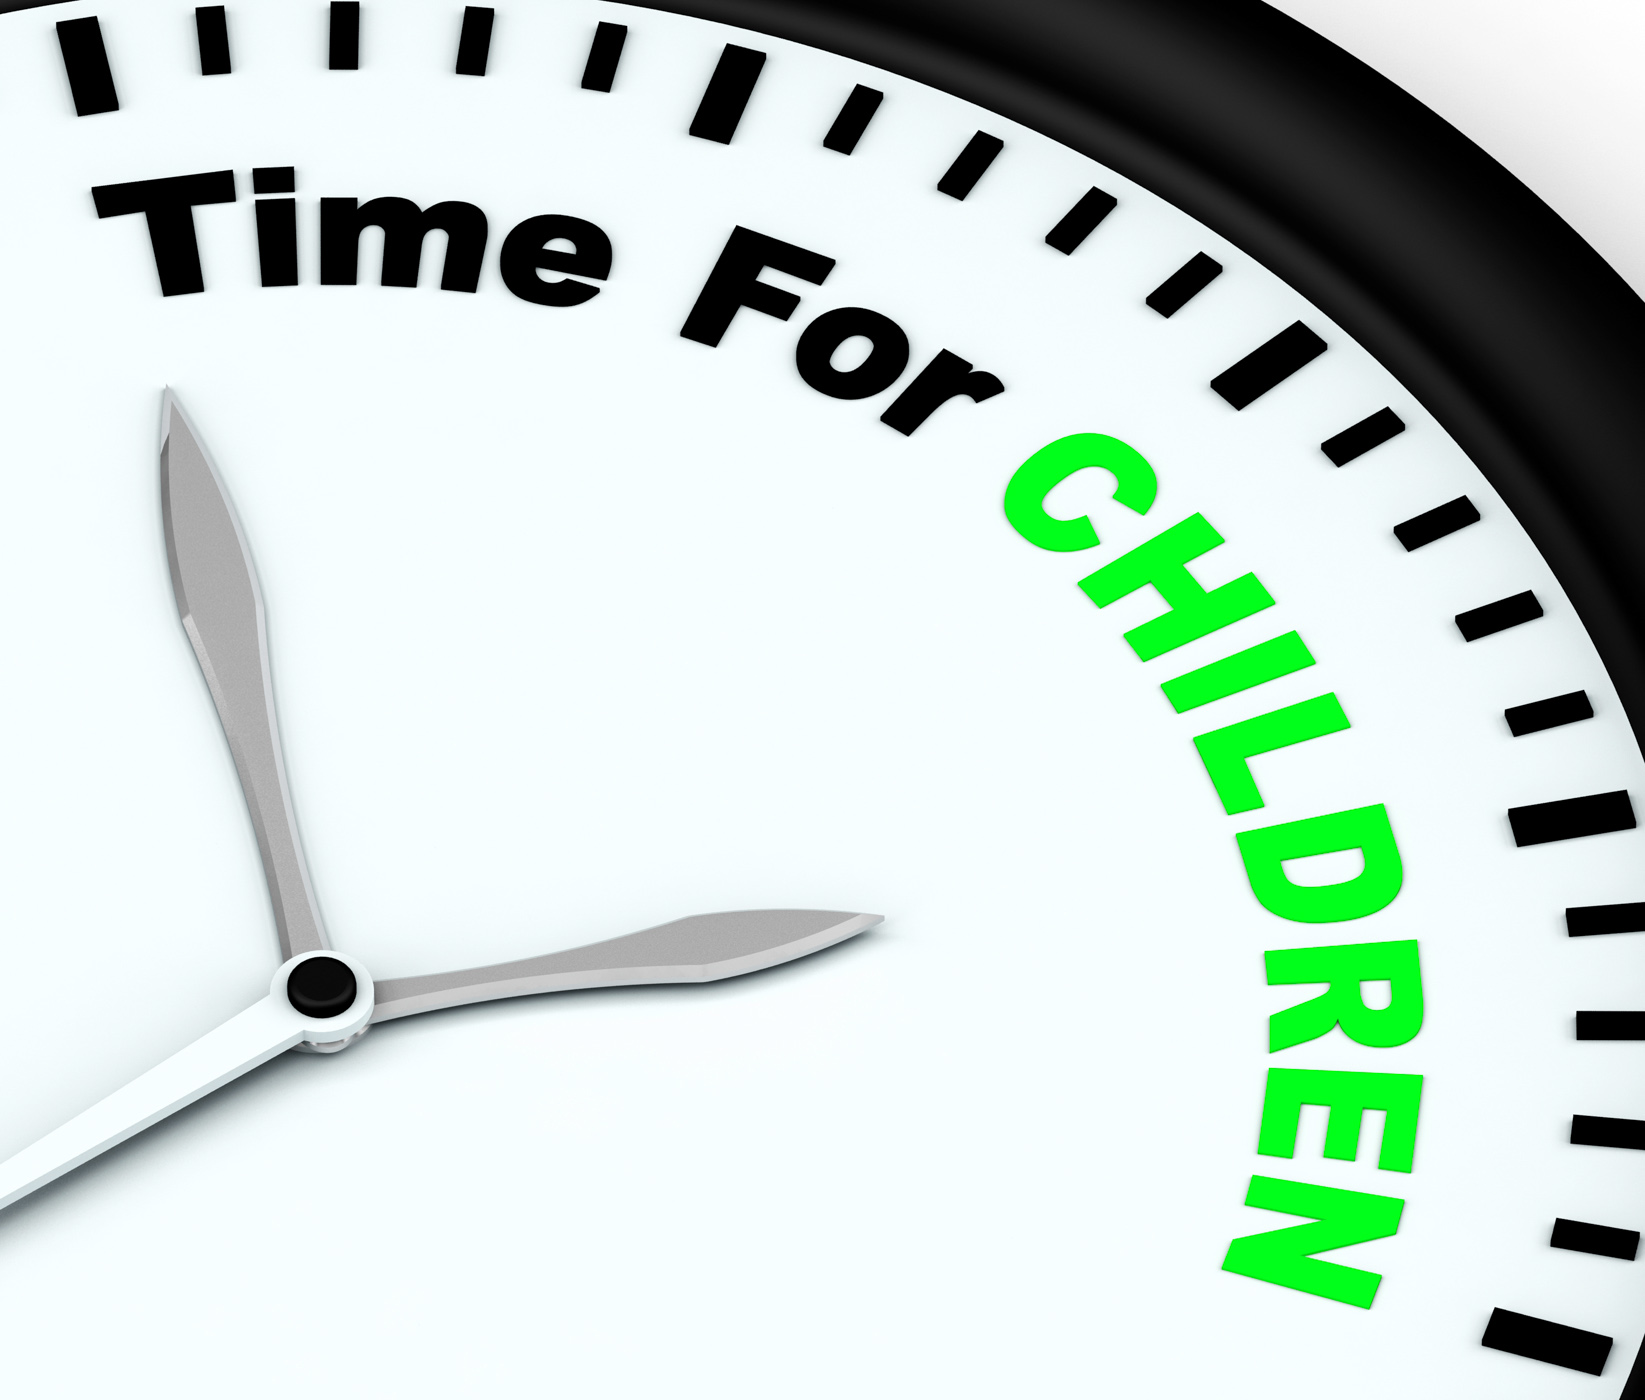 Time for children message meaning playtime or getting pregnant photo